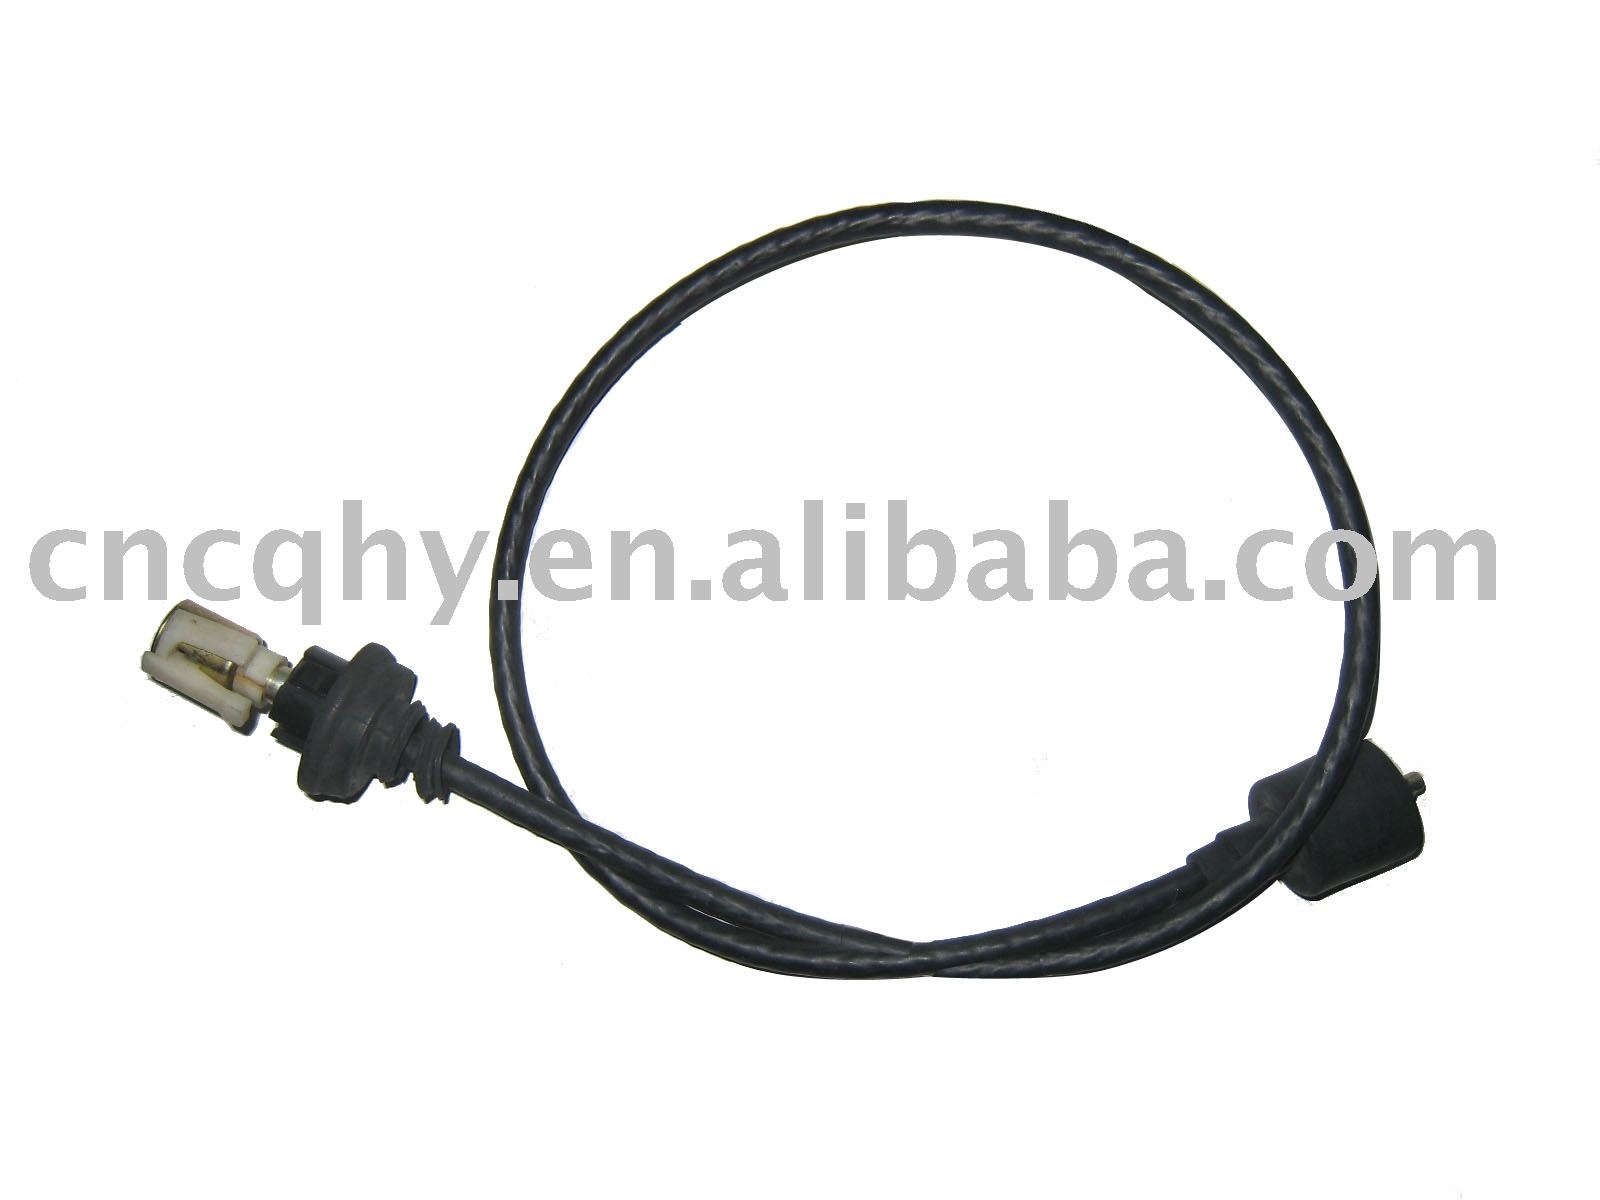 SPEEDOMETER CABLE FOR KIA CONCORD(OGA97 60070E)